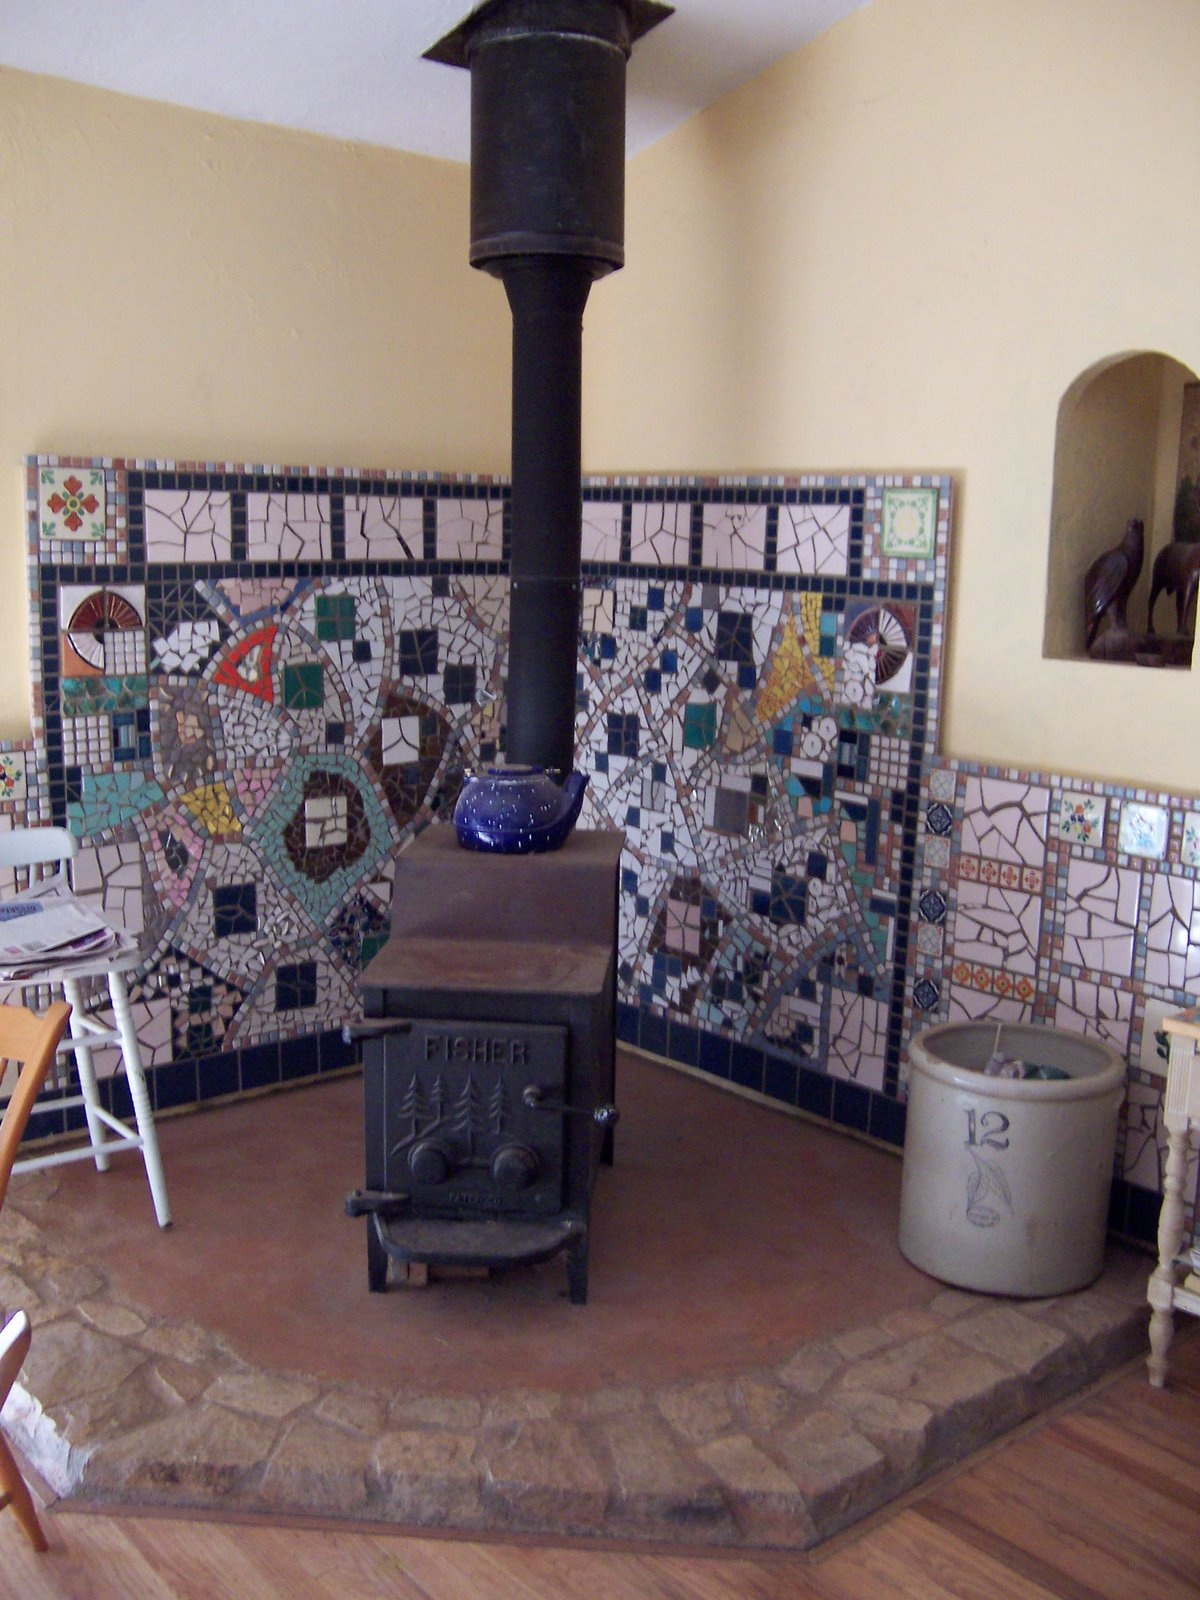 Mosaic Wood Stove Surround - Recy-Queen: Mosaic Wood Stove Surround